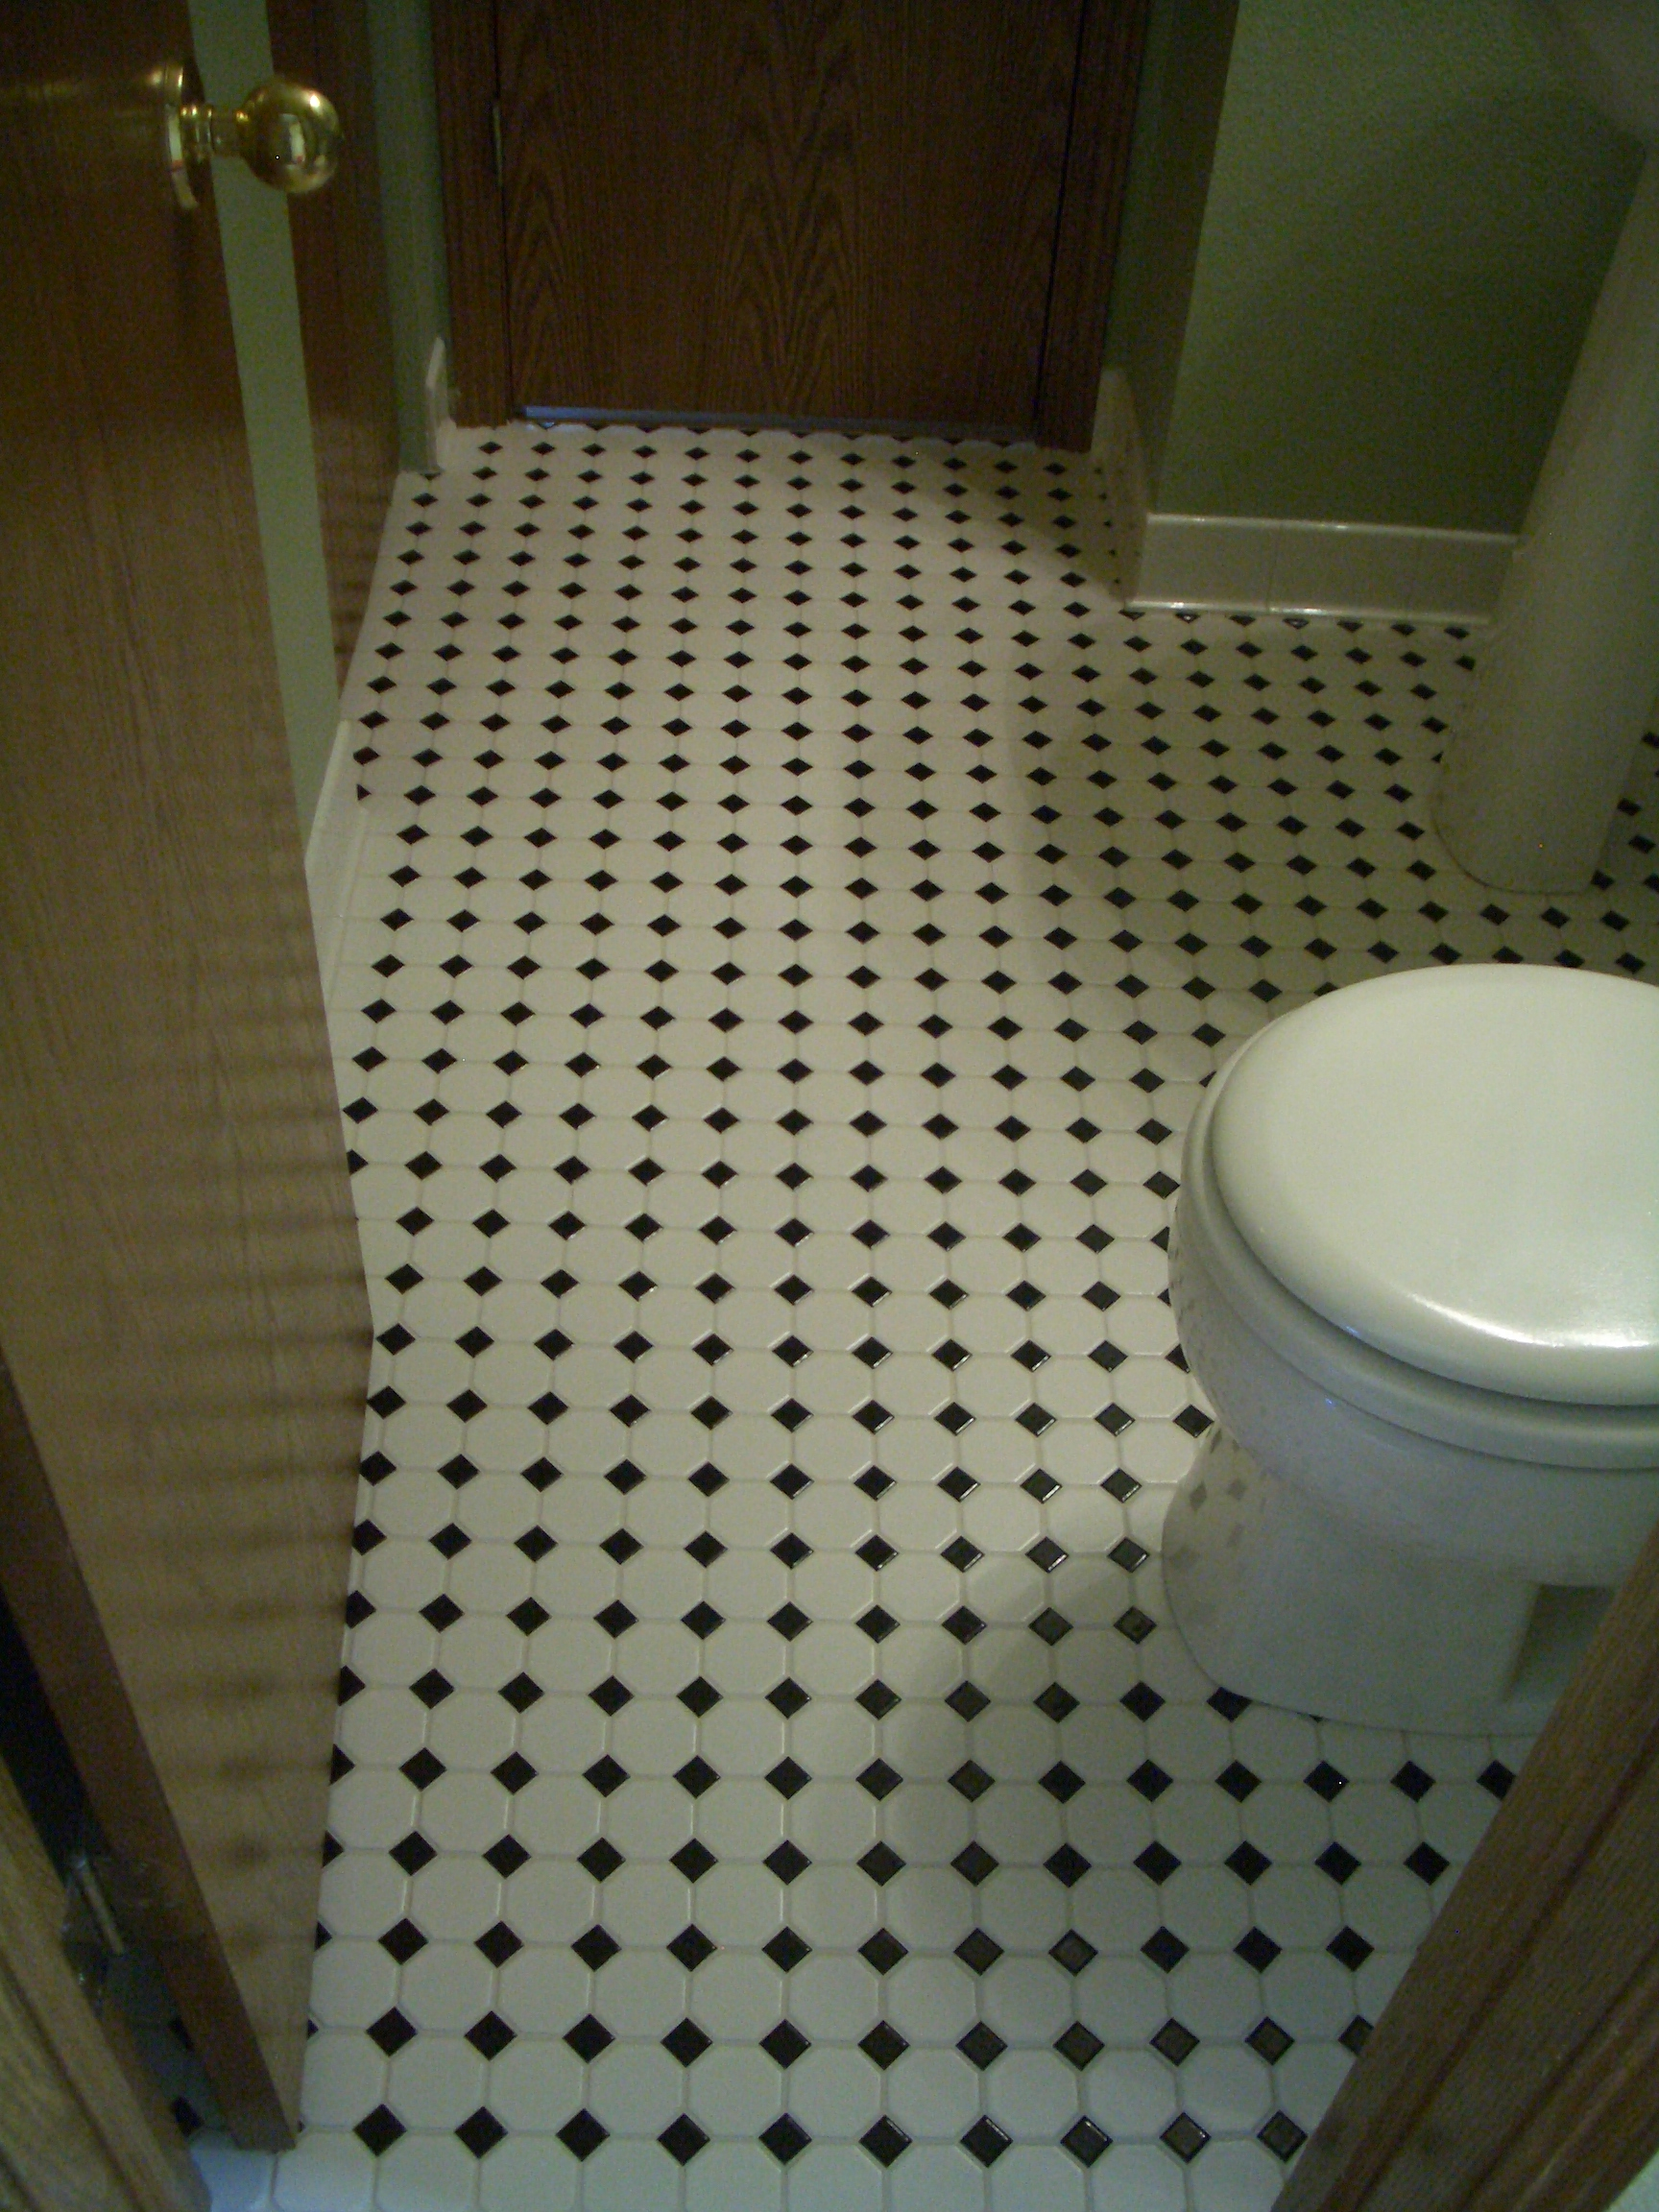 Octagonal mosaic tile floors with black dot in northern colorado octagonal mosaic tile floor installation with black dot in northern colorado dailygadgetfo Choice Image